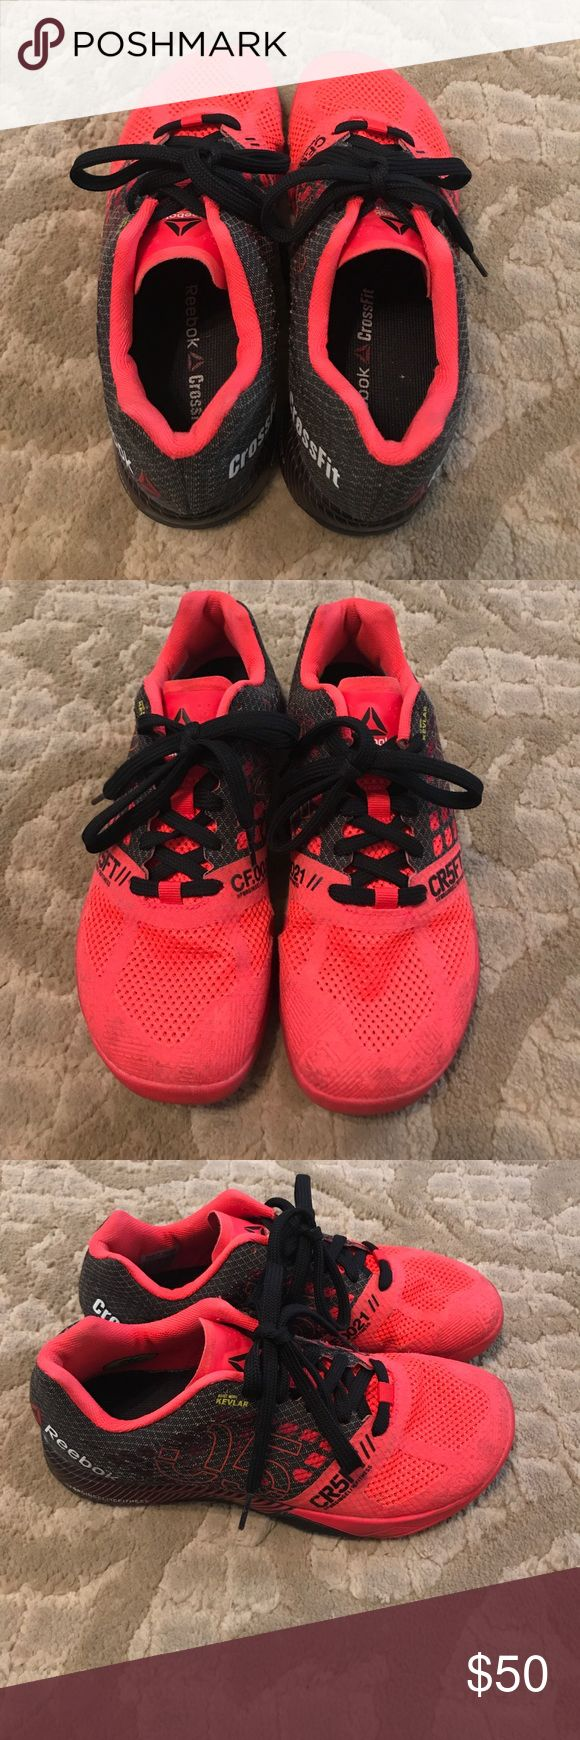 Reebok Crossfit shoes Reebok crossfit shoes series 5. Size 8. Good condition. Barely worn. Reebok Shoes